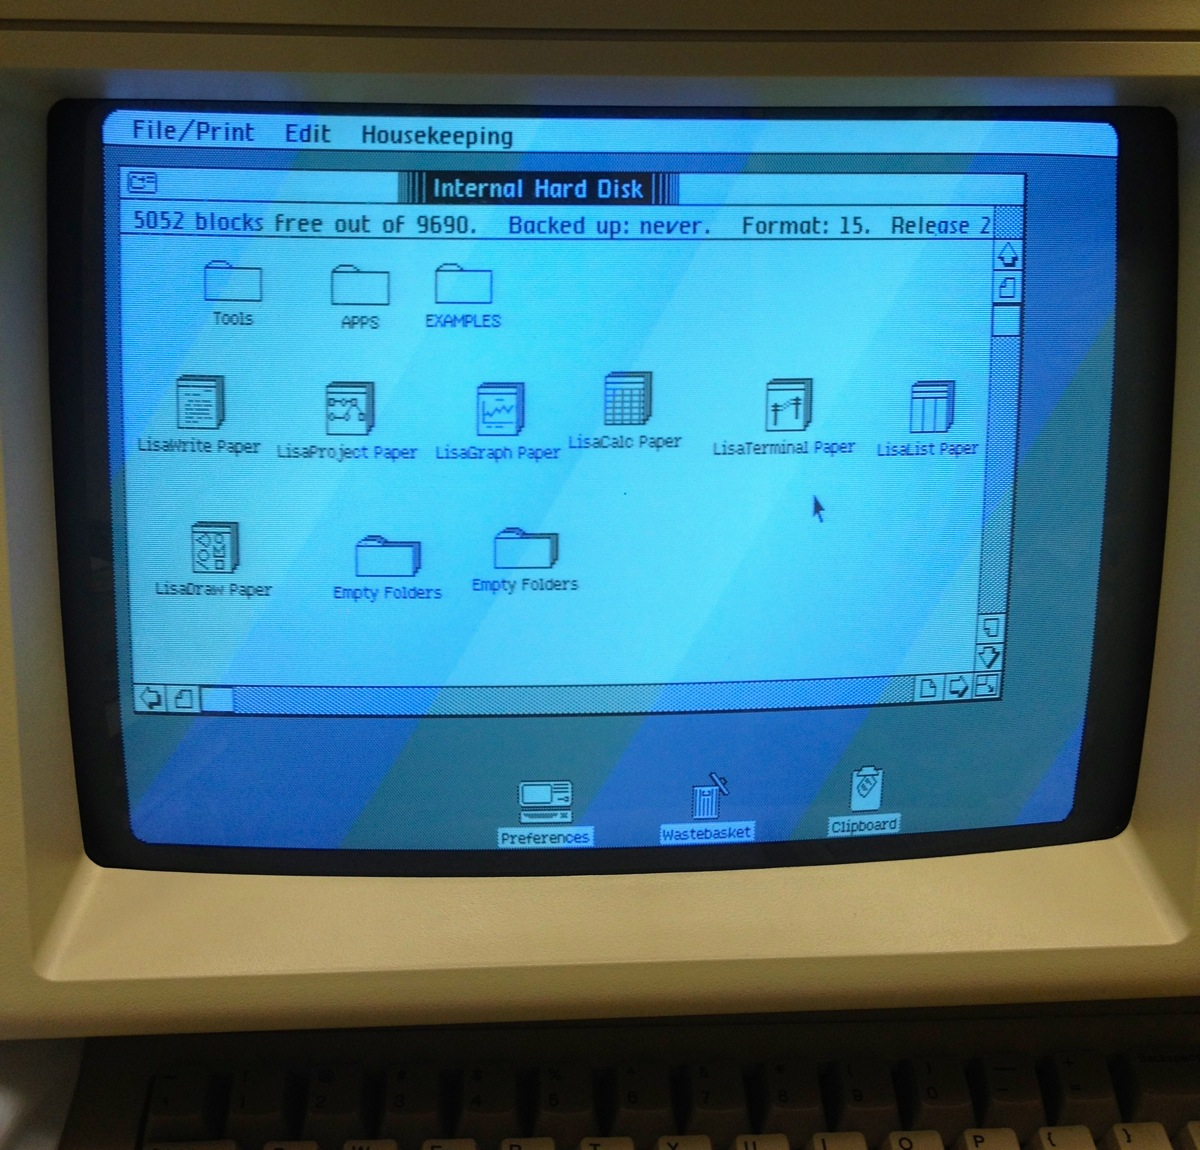 lisa-profile-boot-desktop-folder